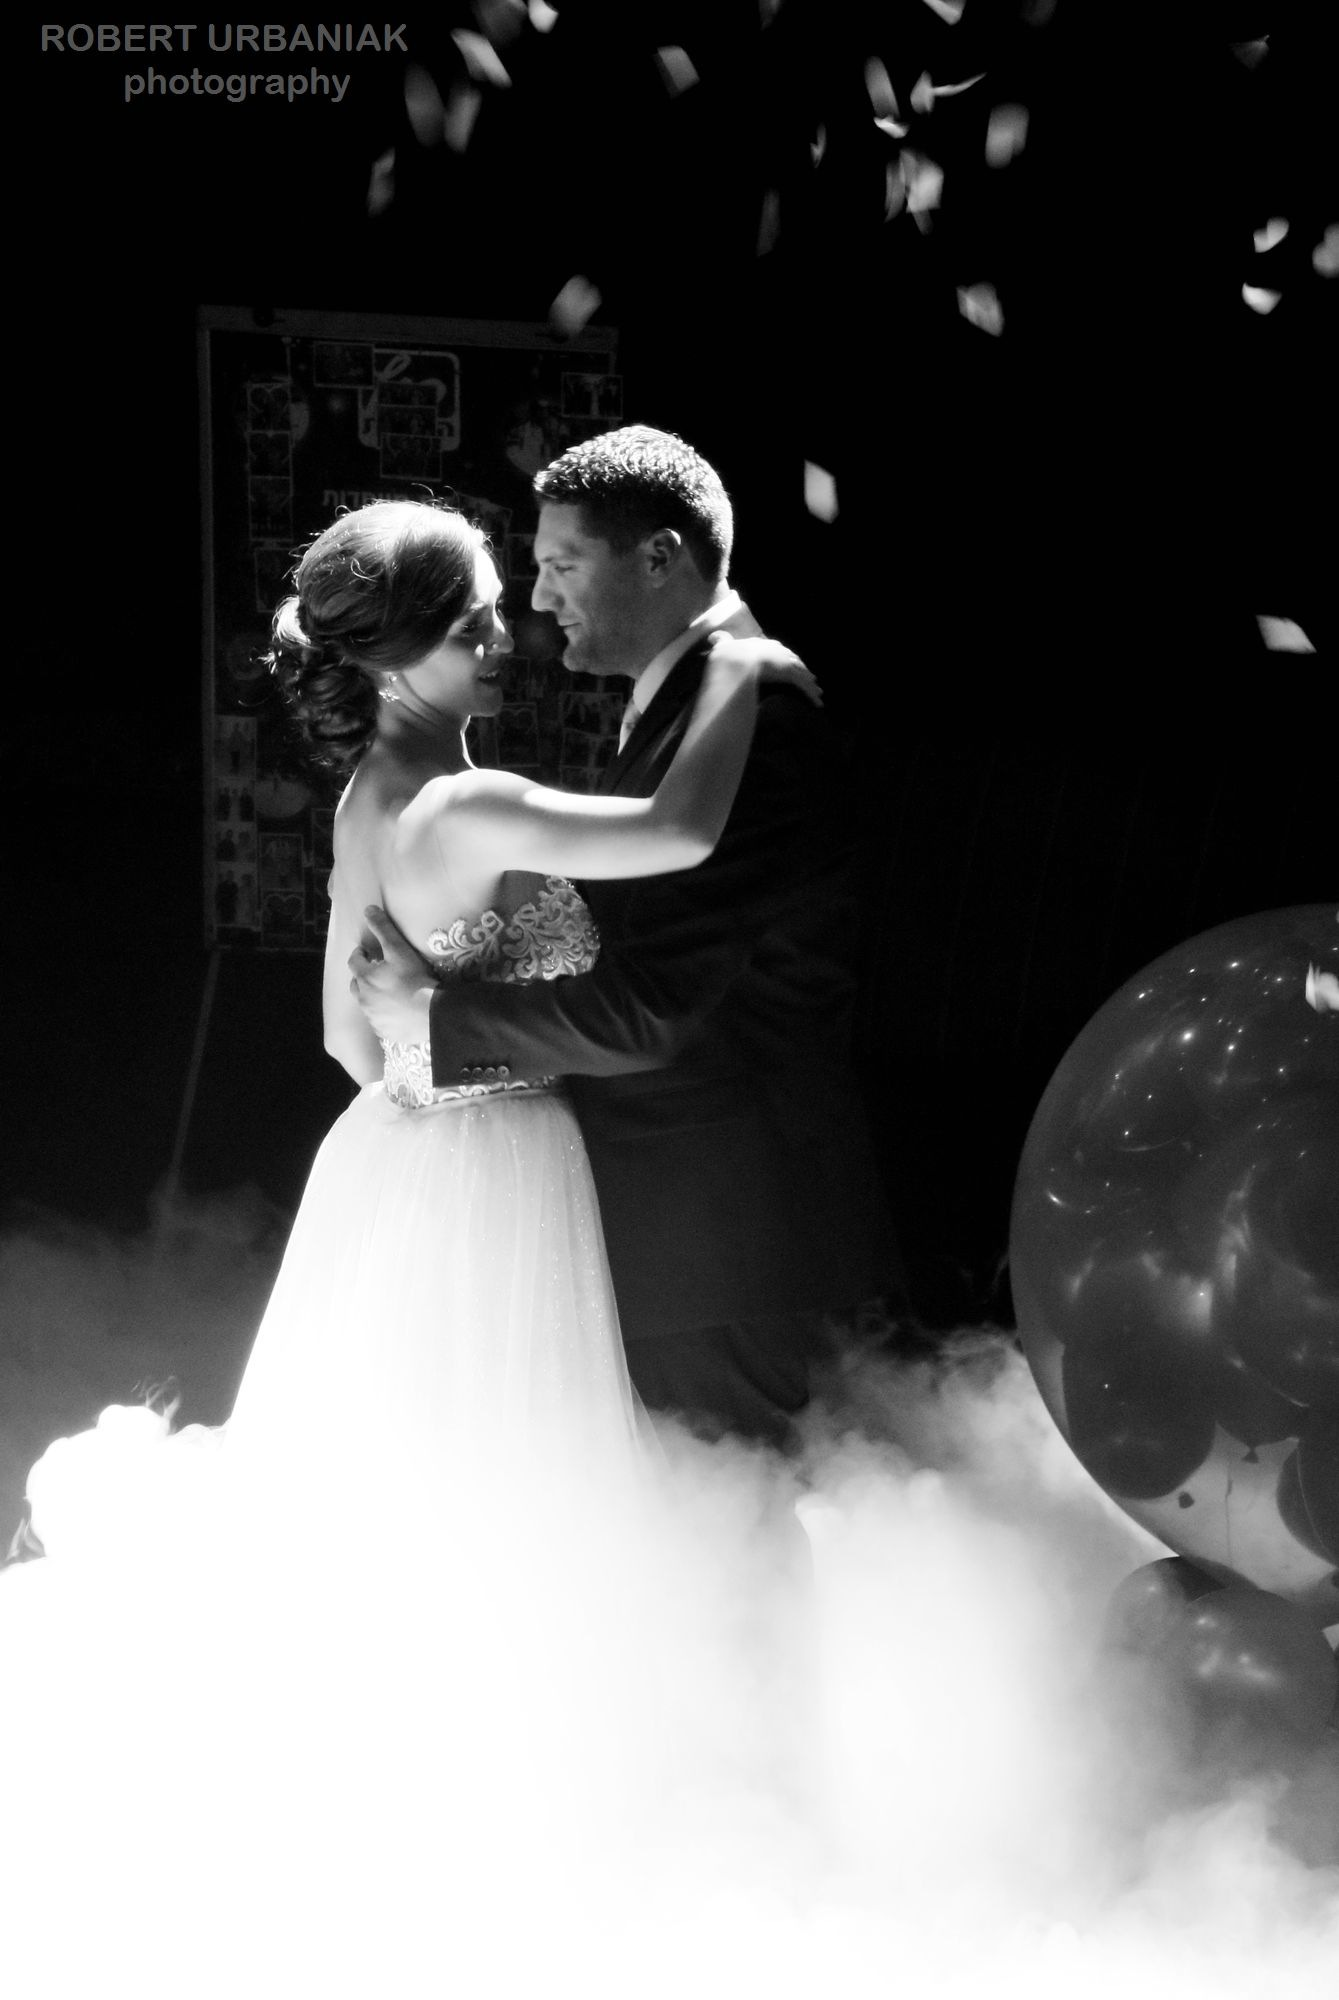 first dance by Robert Urbaniak